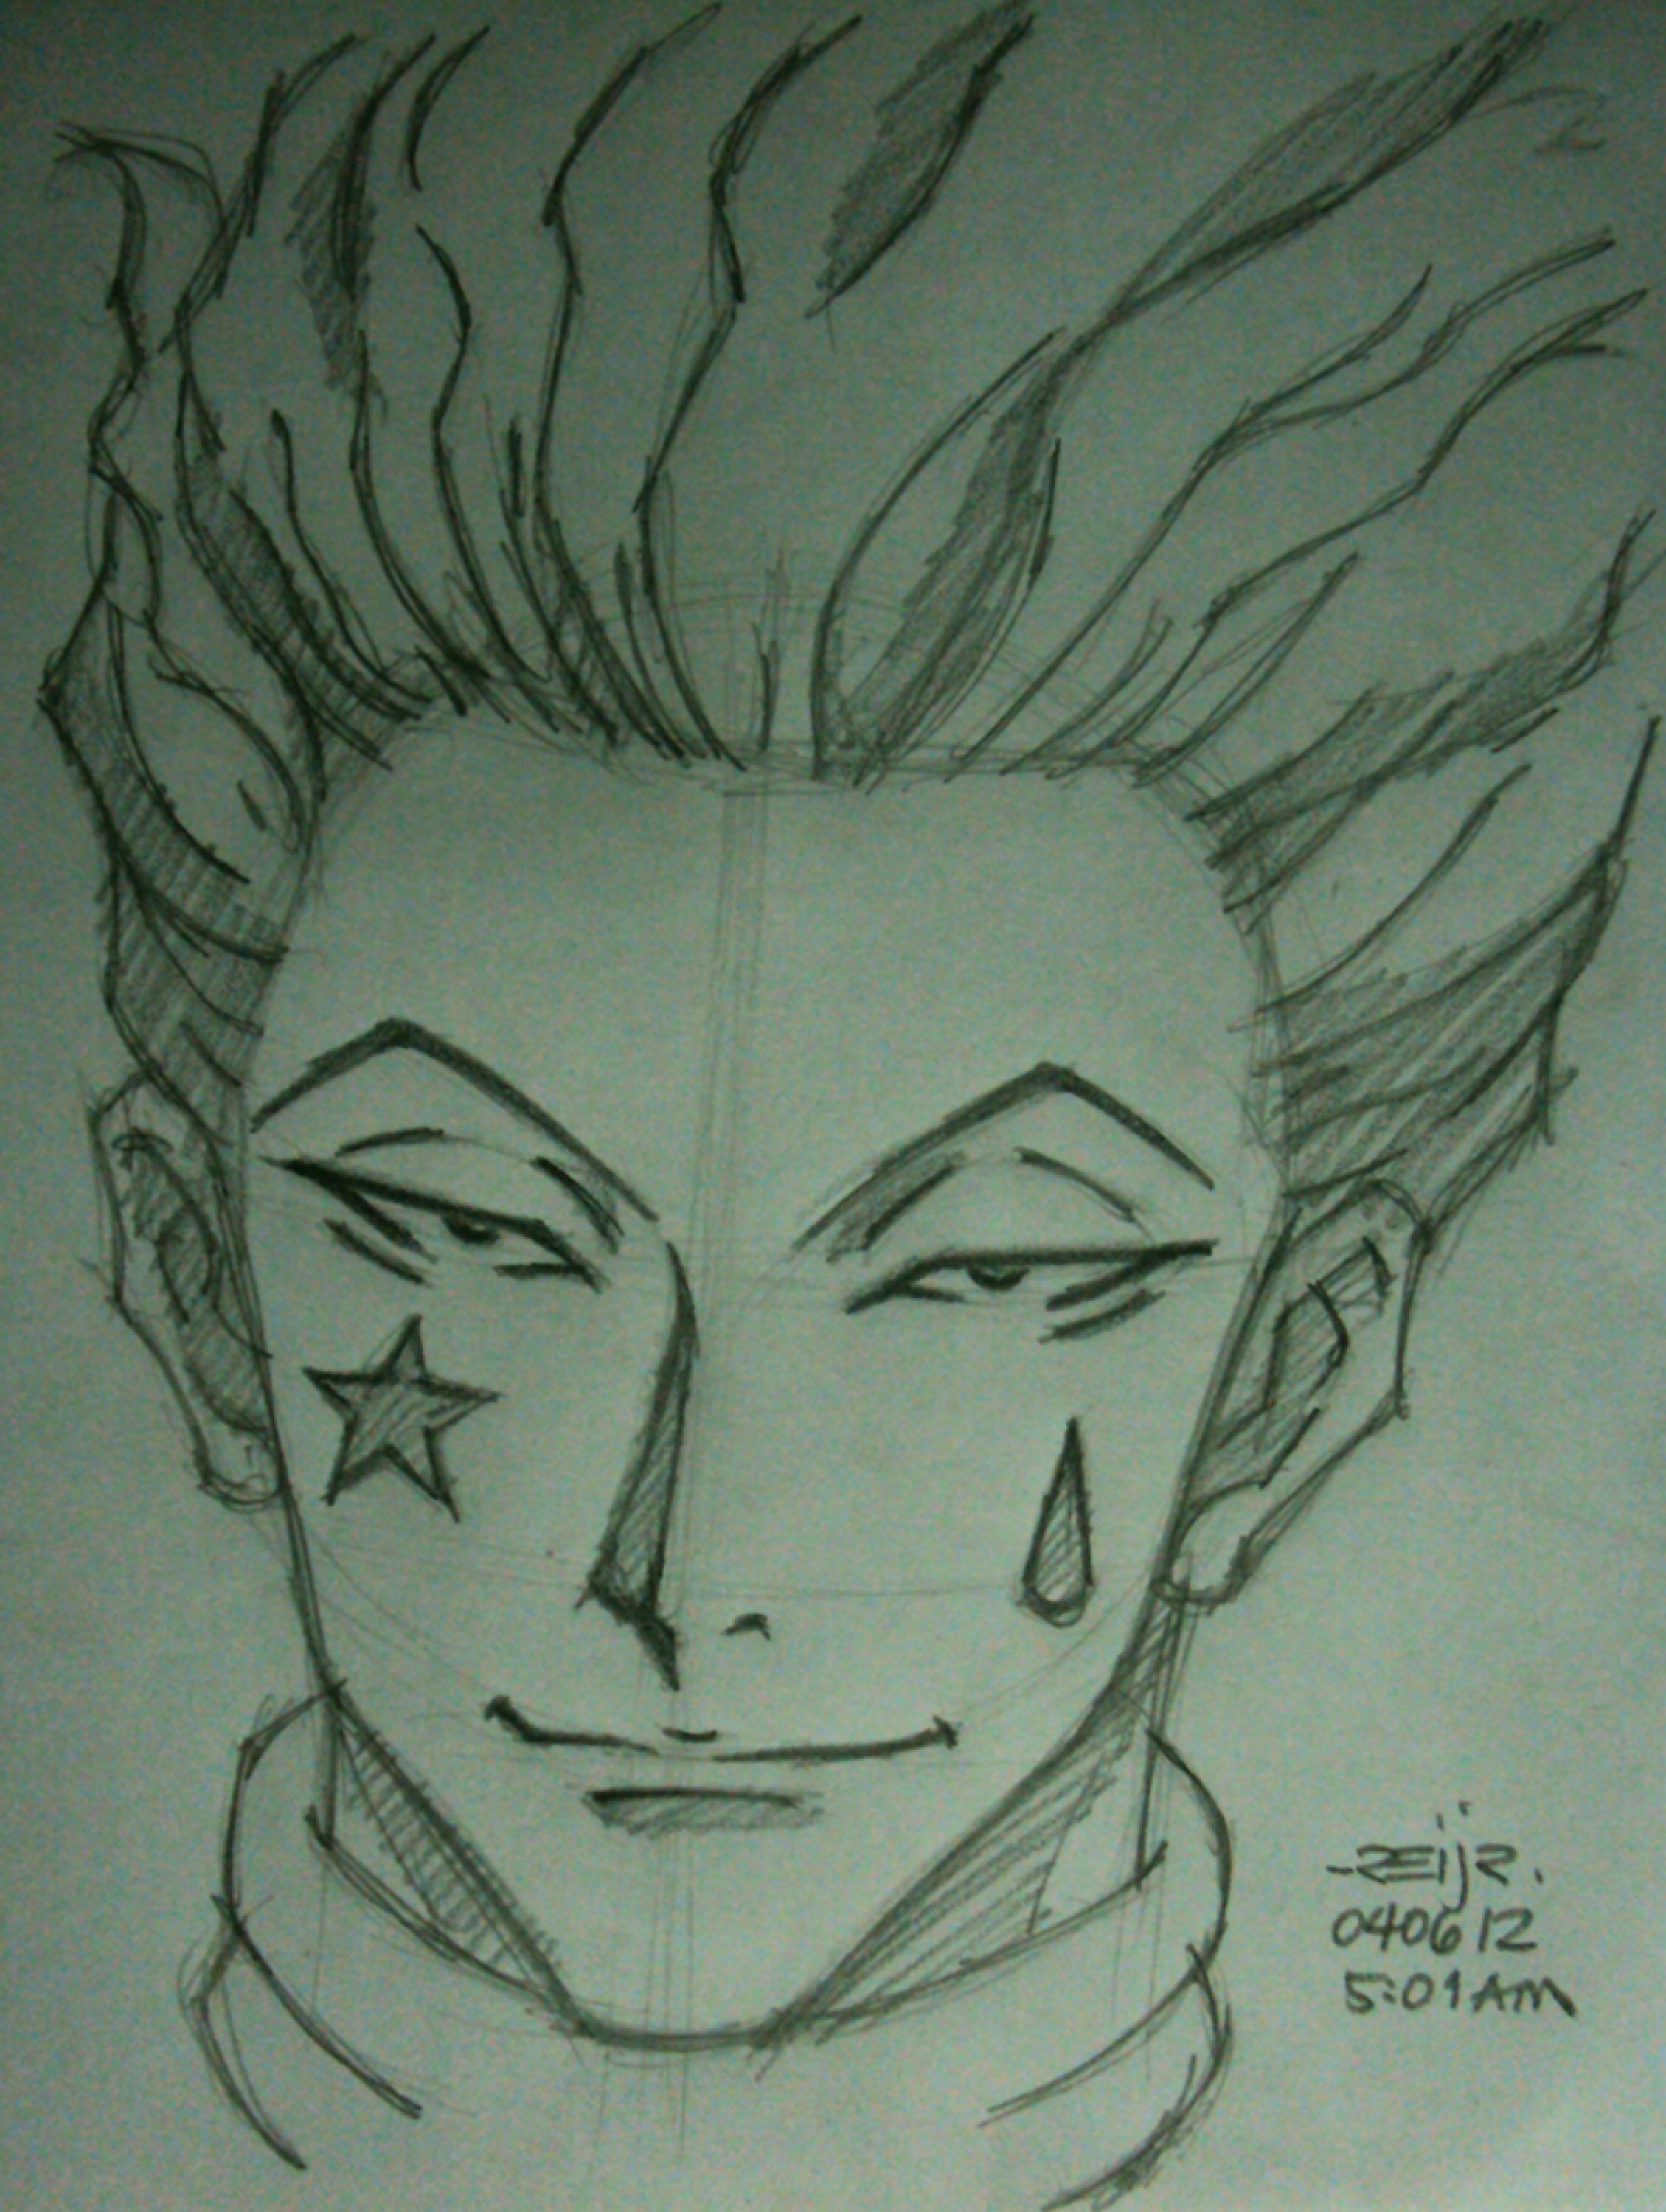 Hisoka By Reijr On Deviantart In 2020 Anime Character Drawing Anime Sketch Hunter Anime